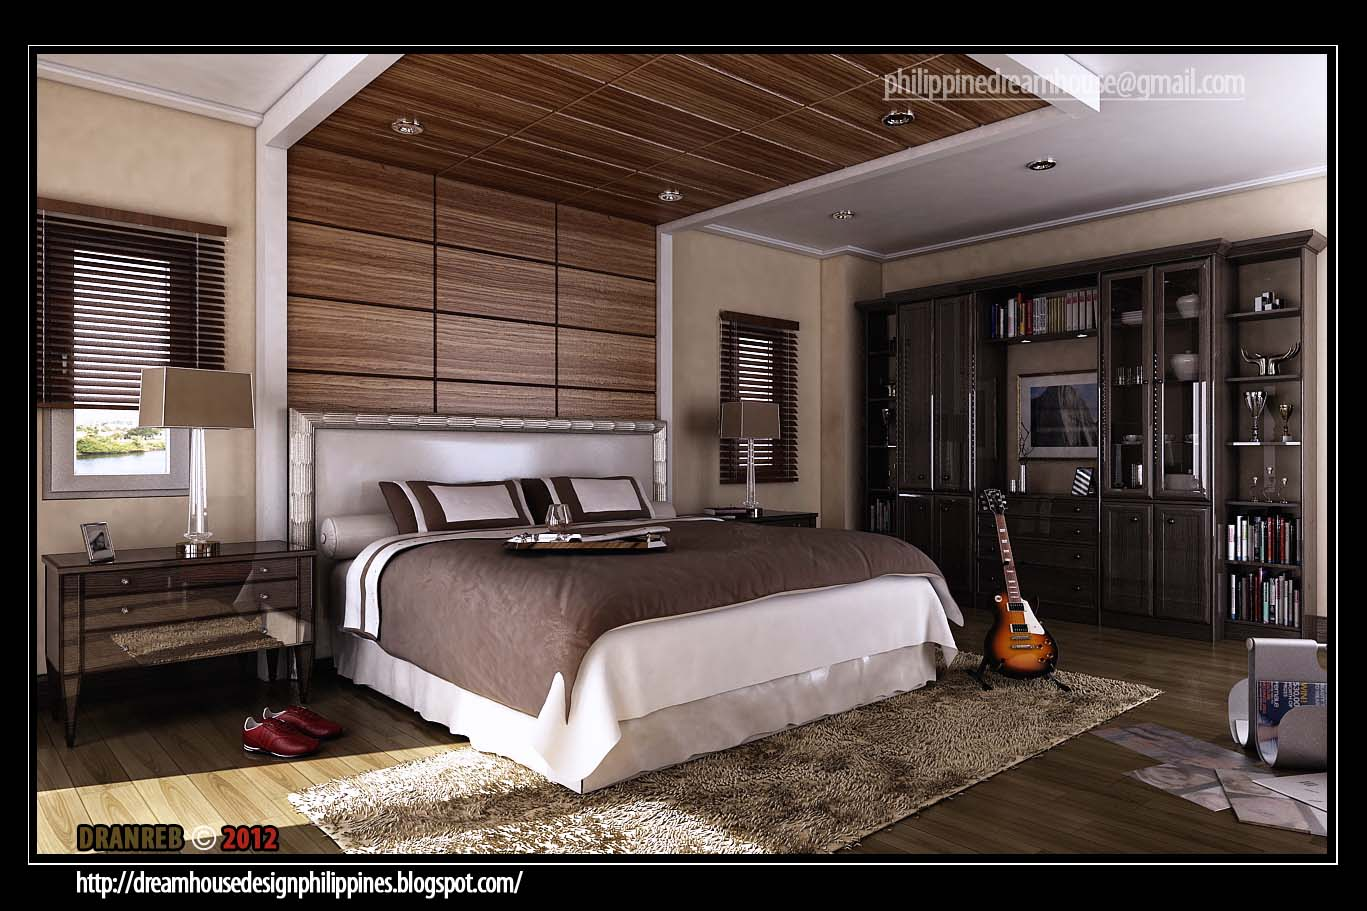 Philippine dream house design the master 39 s bedroom for Designs of master bedroom